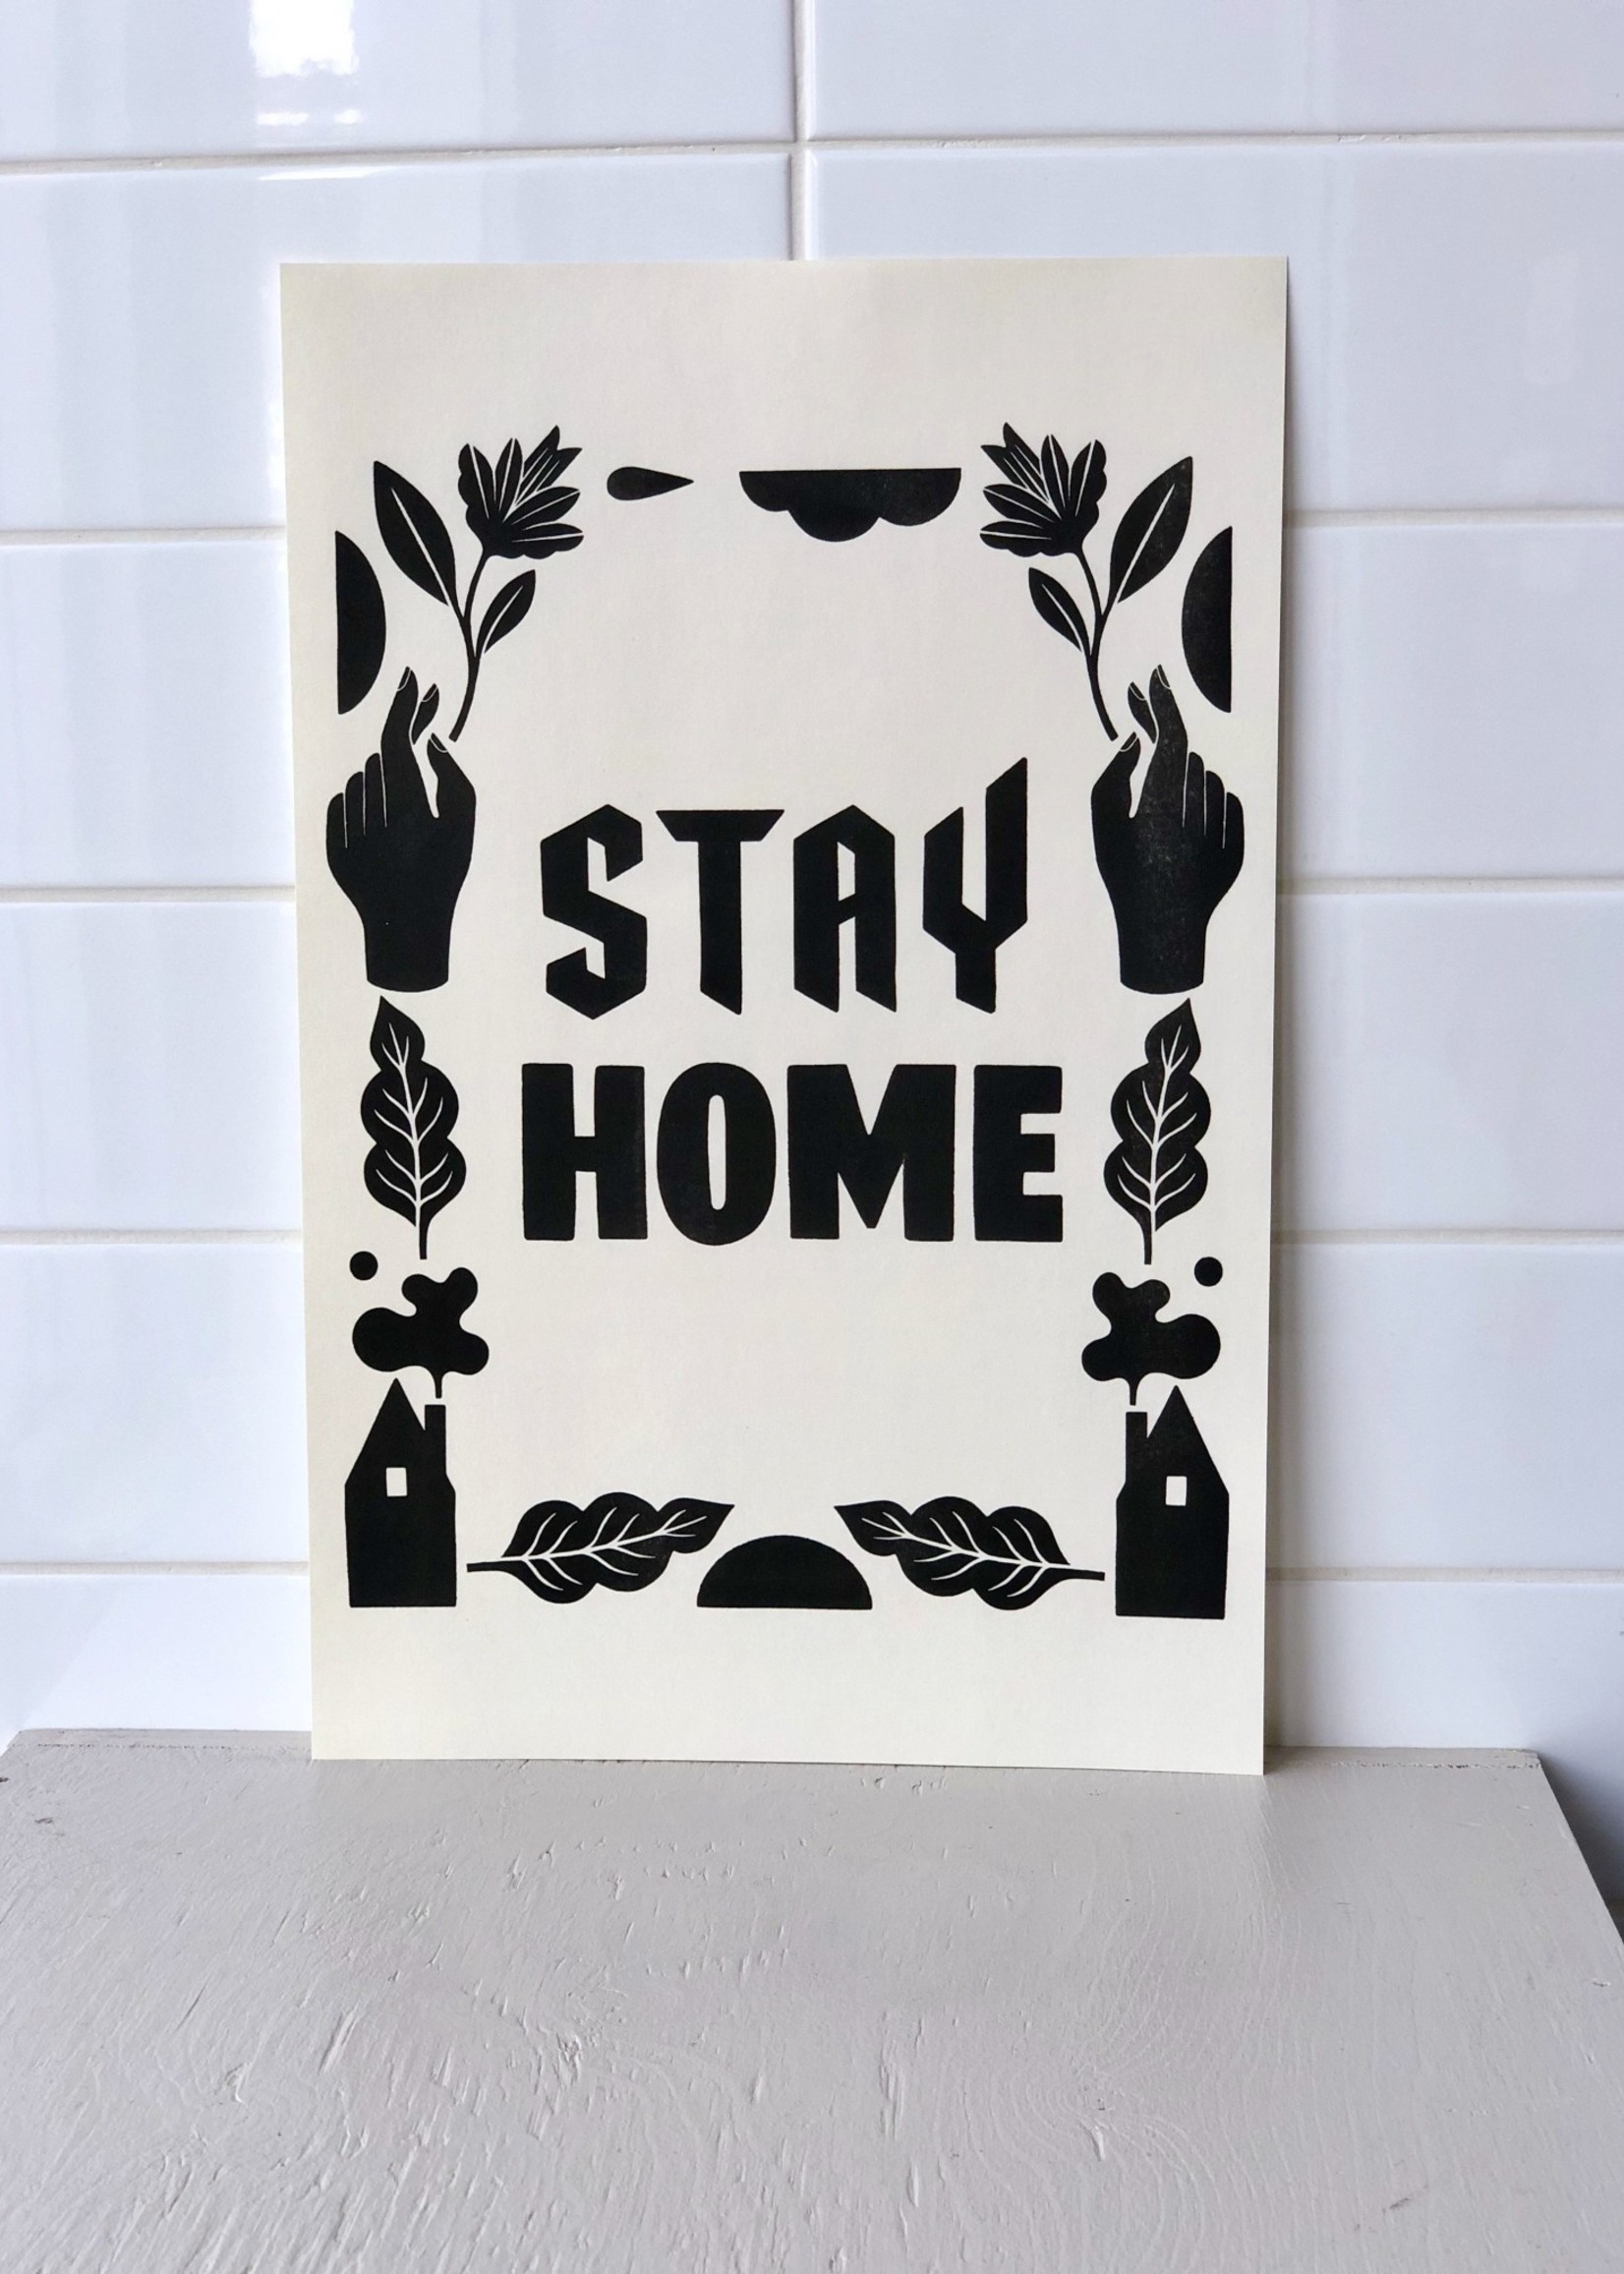 "Stay Home Club ""Stay Home Club"" affiches risographe -28cm x 43cm"